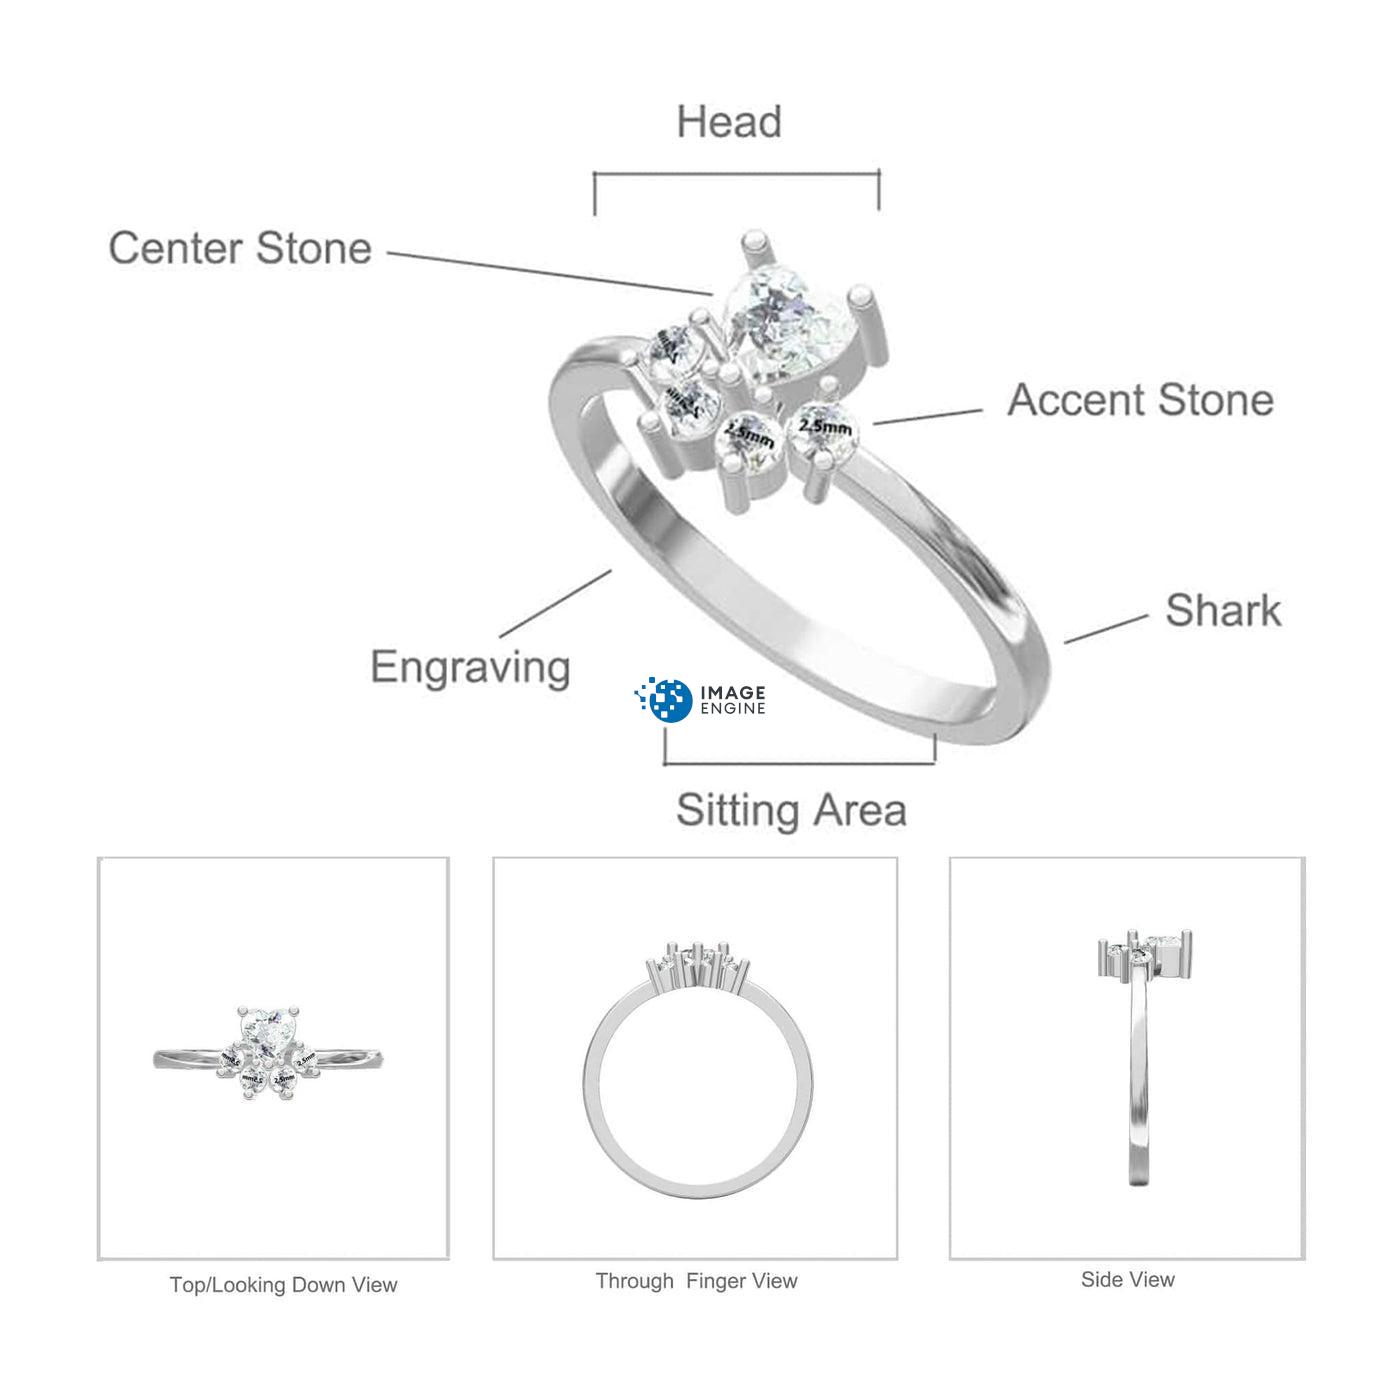 Bella Paw Rose Quartz Ring - Parts - Diagram